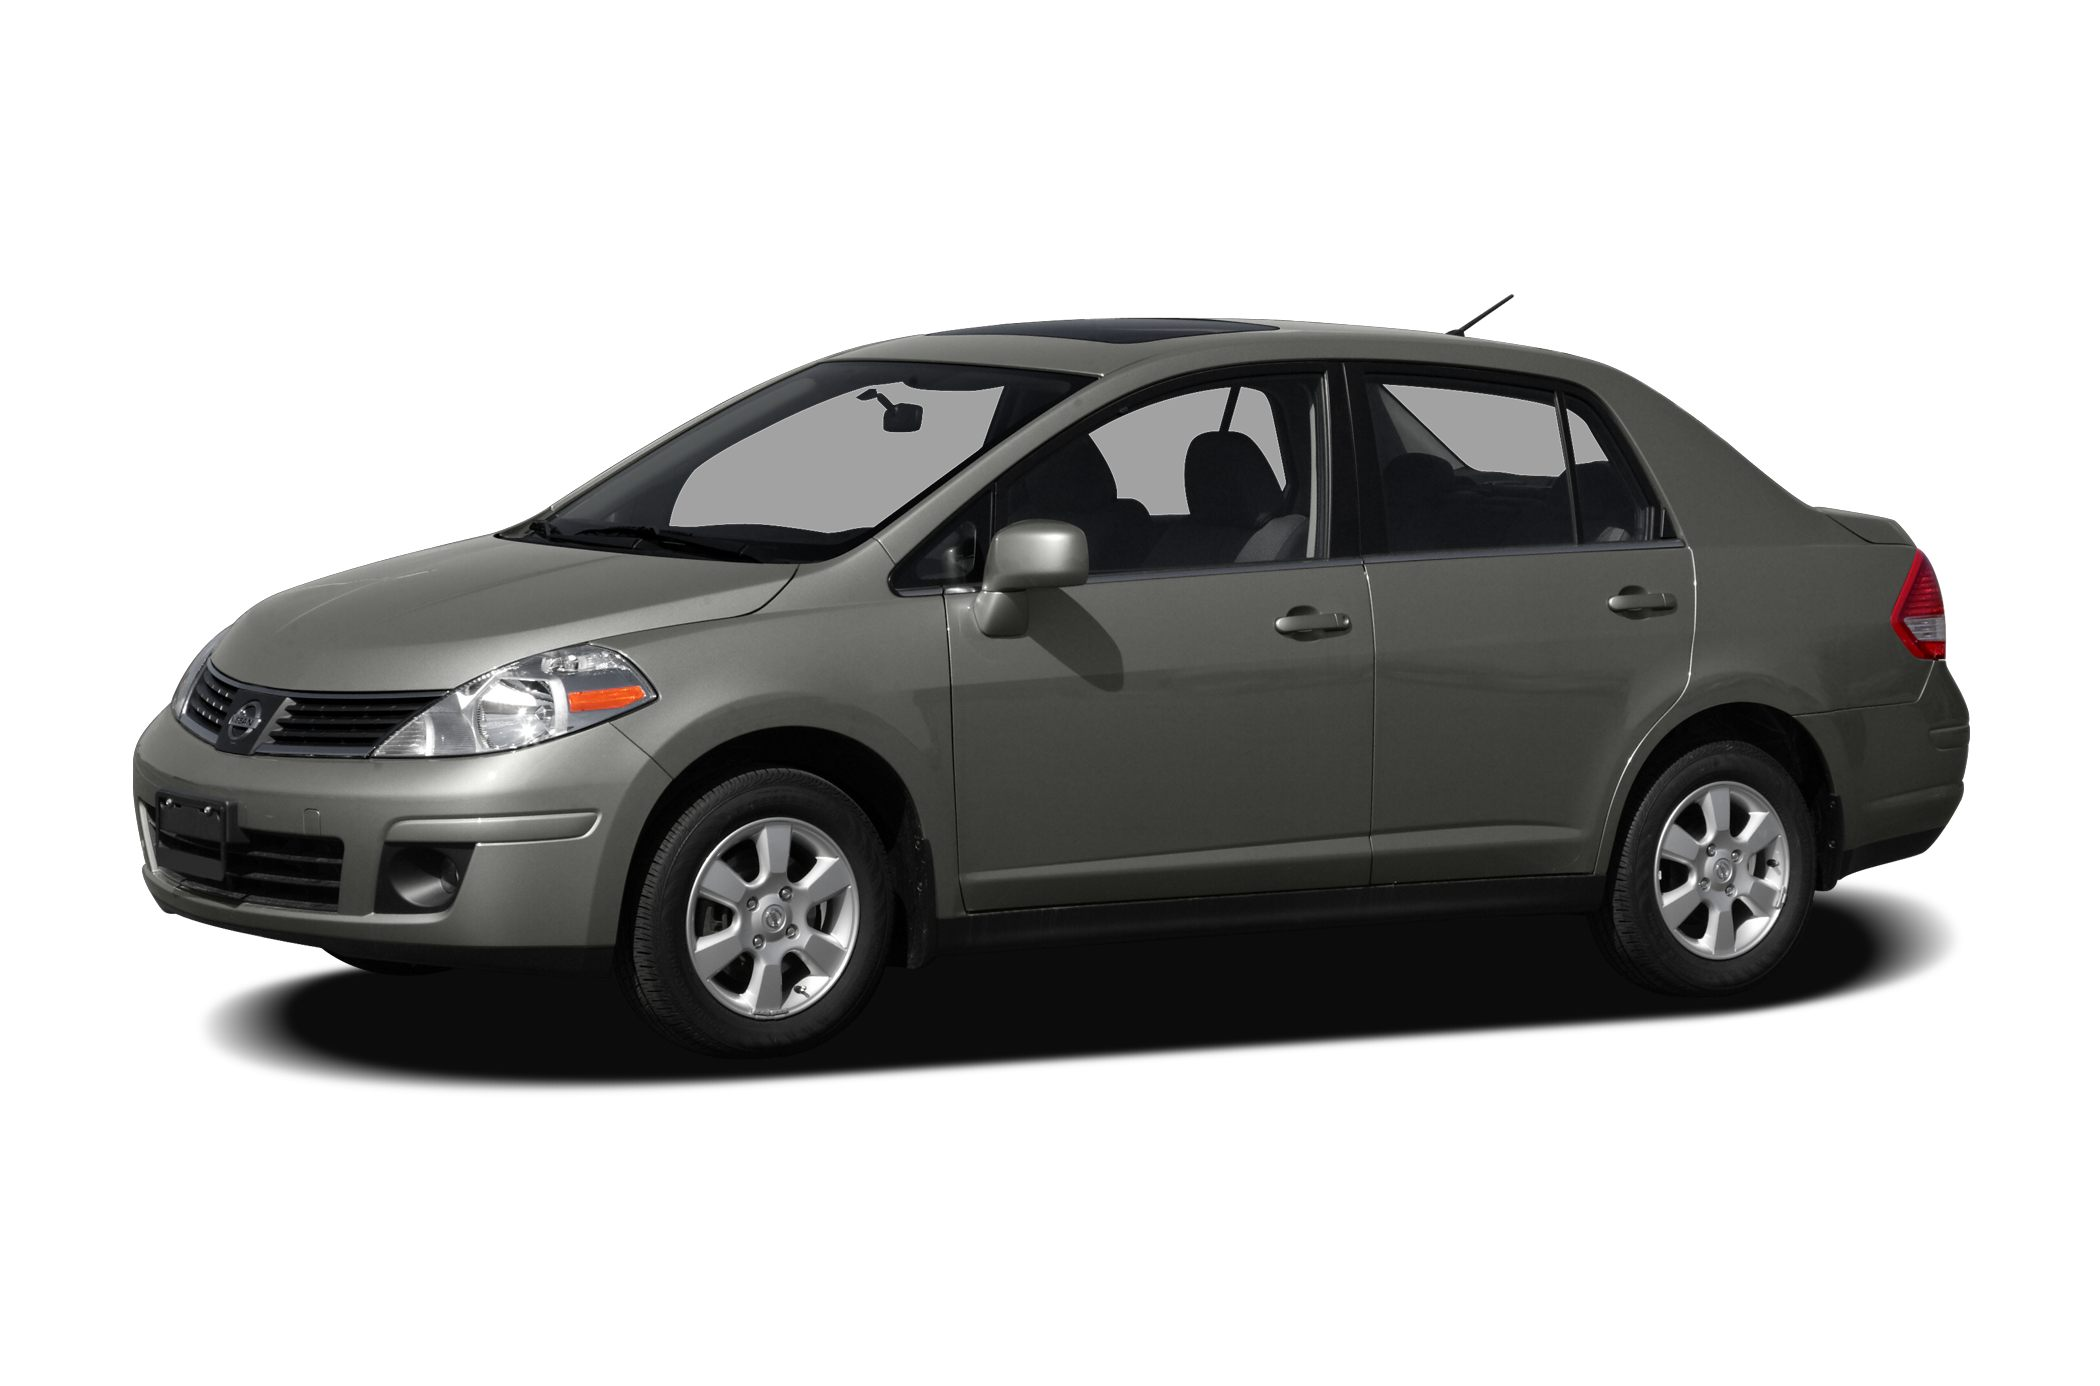 2007 Nissan Versa SL Hatchback for sale in Rocky Mount for $6,900 with 99,995 miles.